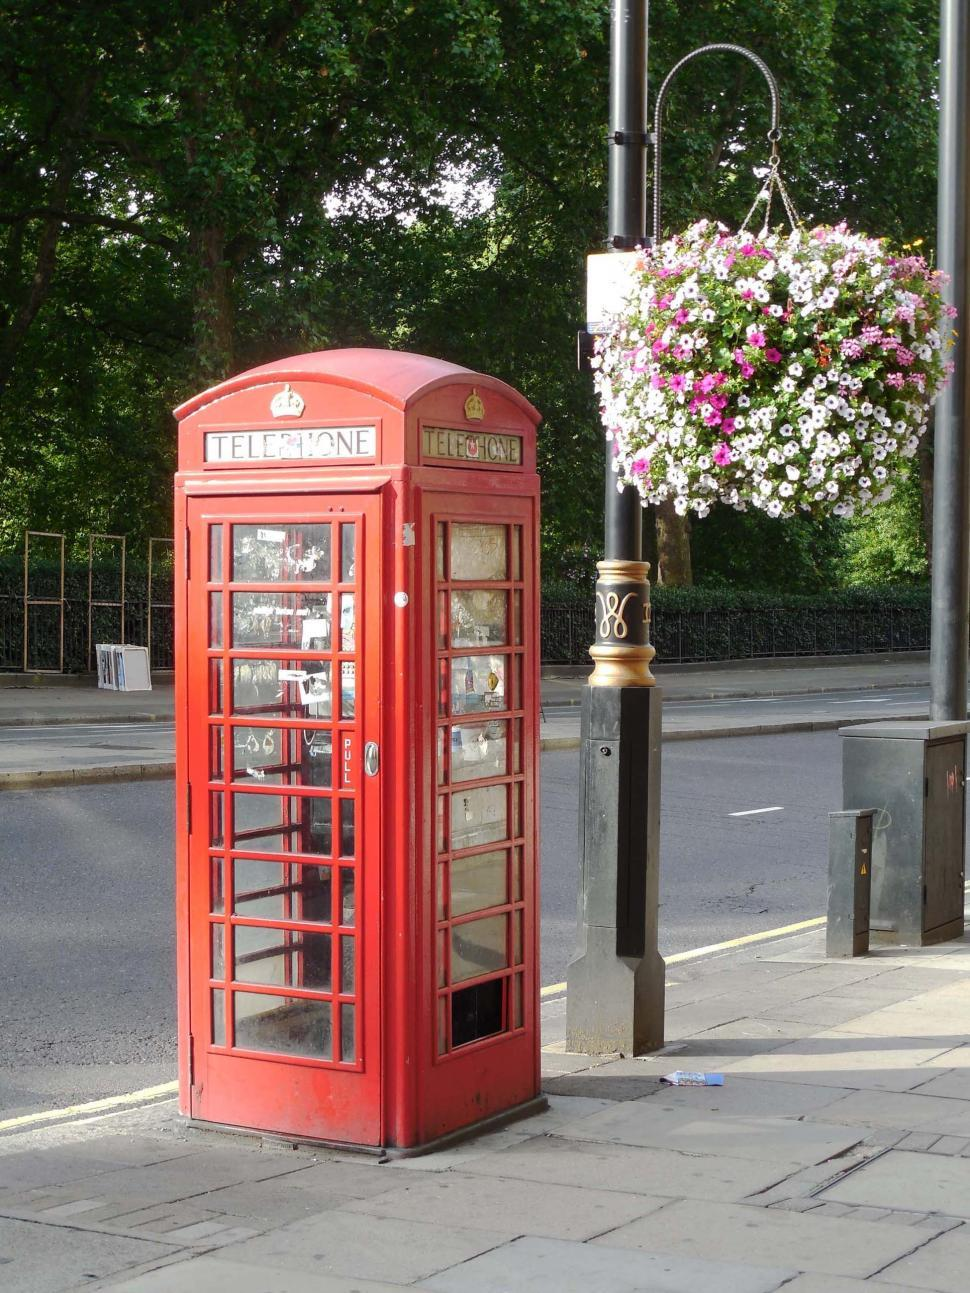 Download Free Stock HD Photo of London Telephone Booth Online